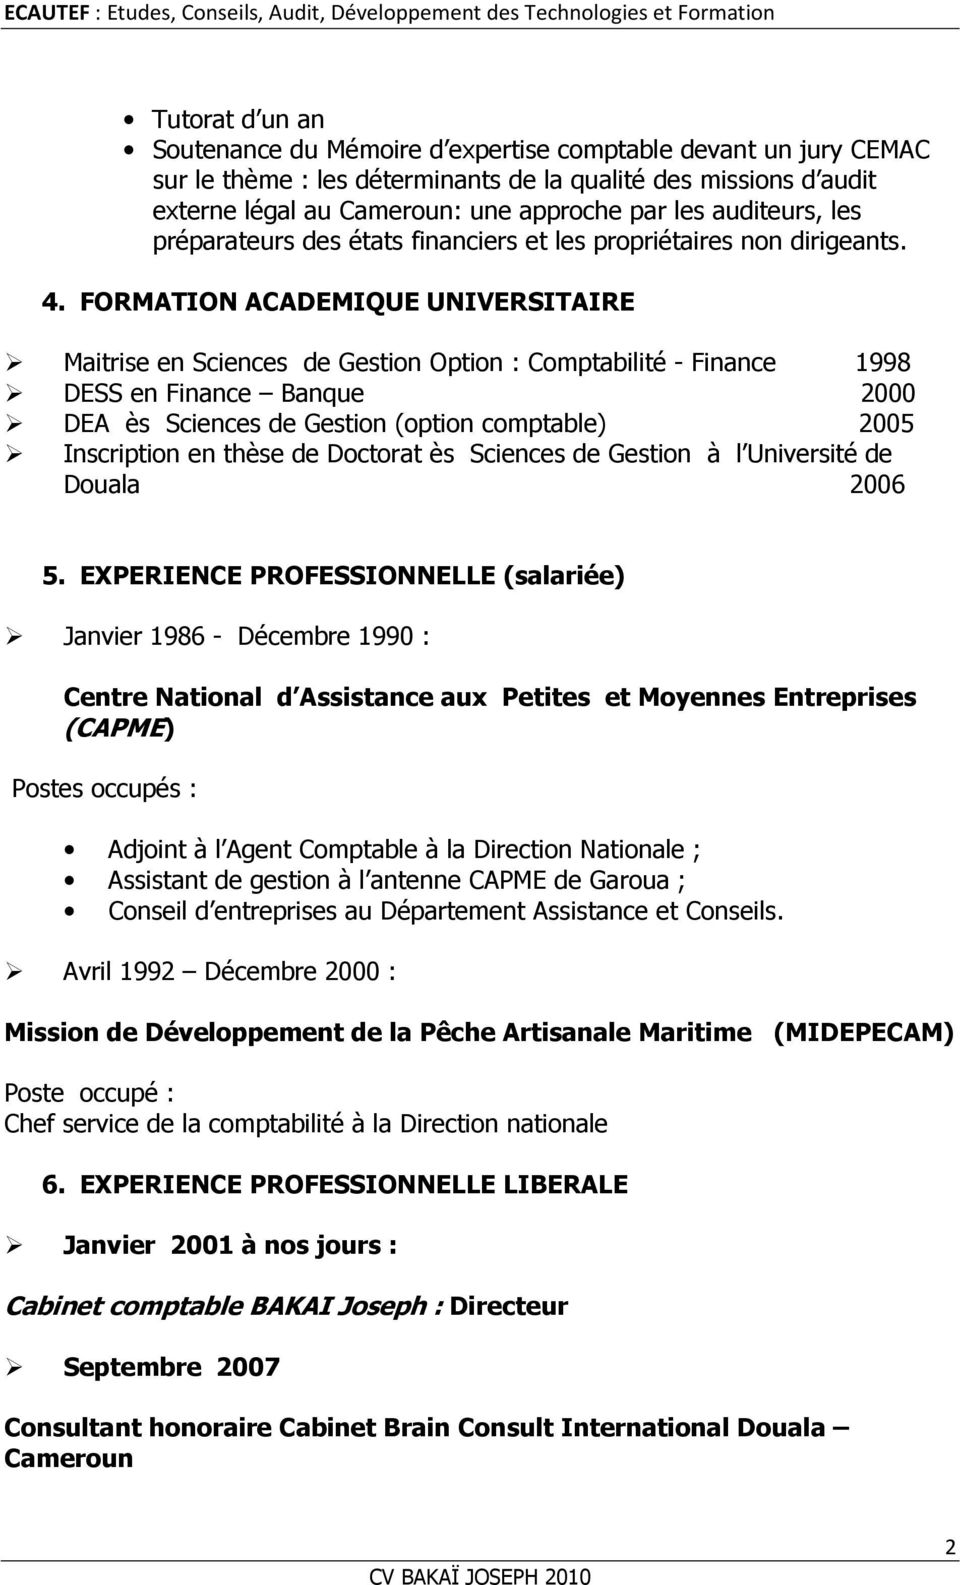 FORMATION ACADEMIQUE UNIVERSITAIRE Maitrise en Sciences de Gestion Option : Comptabilité - Finance 1998 DESS en Finance Banque 2000 DEA ès Sciences de Gestion (option comptable) 2005 Inscription en